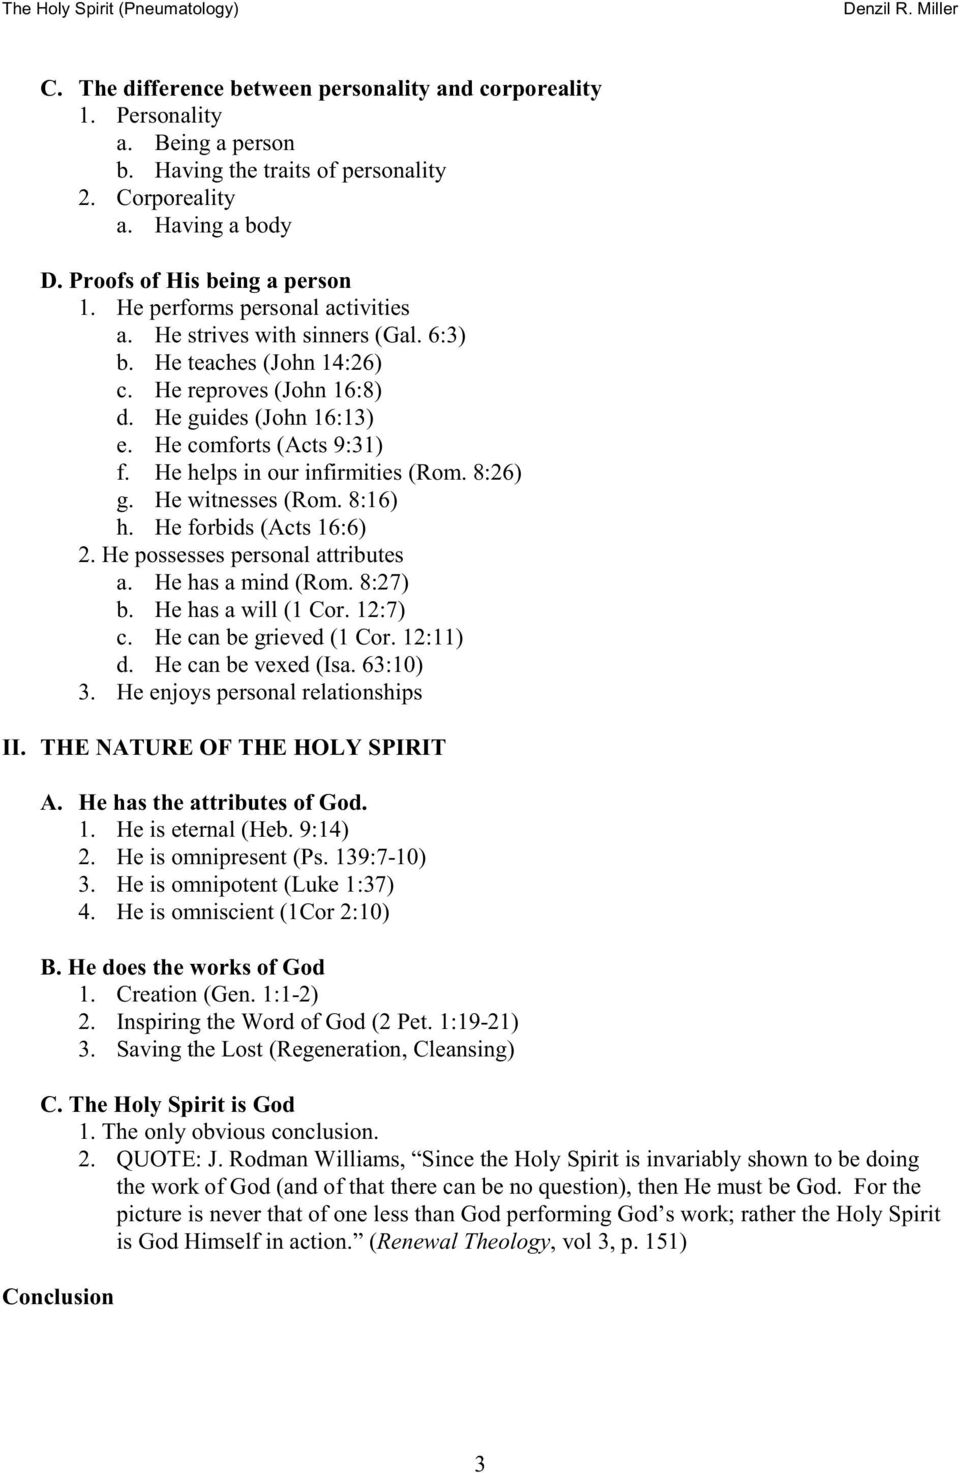 The Holy Spirit  (Pneumatology) Complete Lecture Notes - PDF